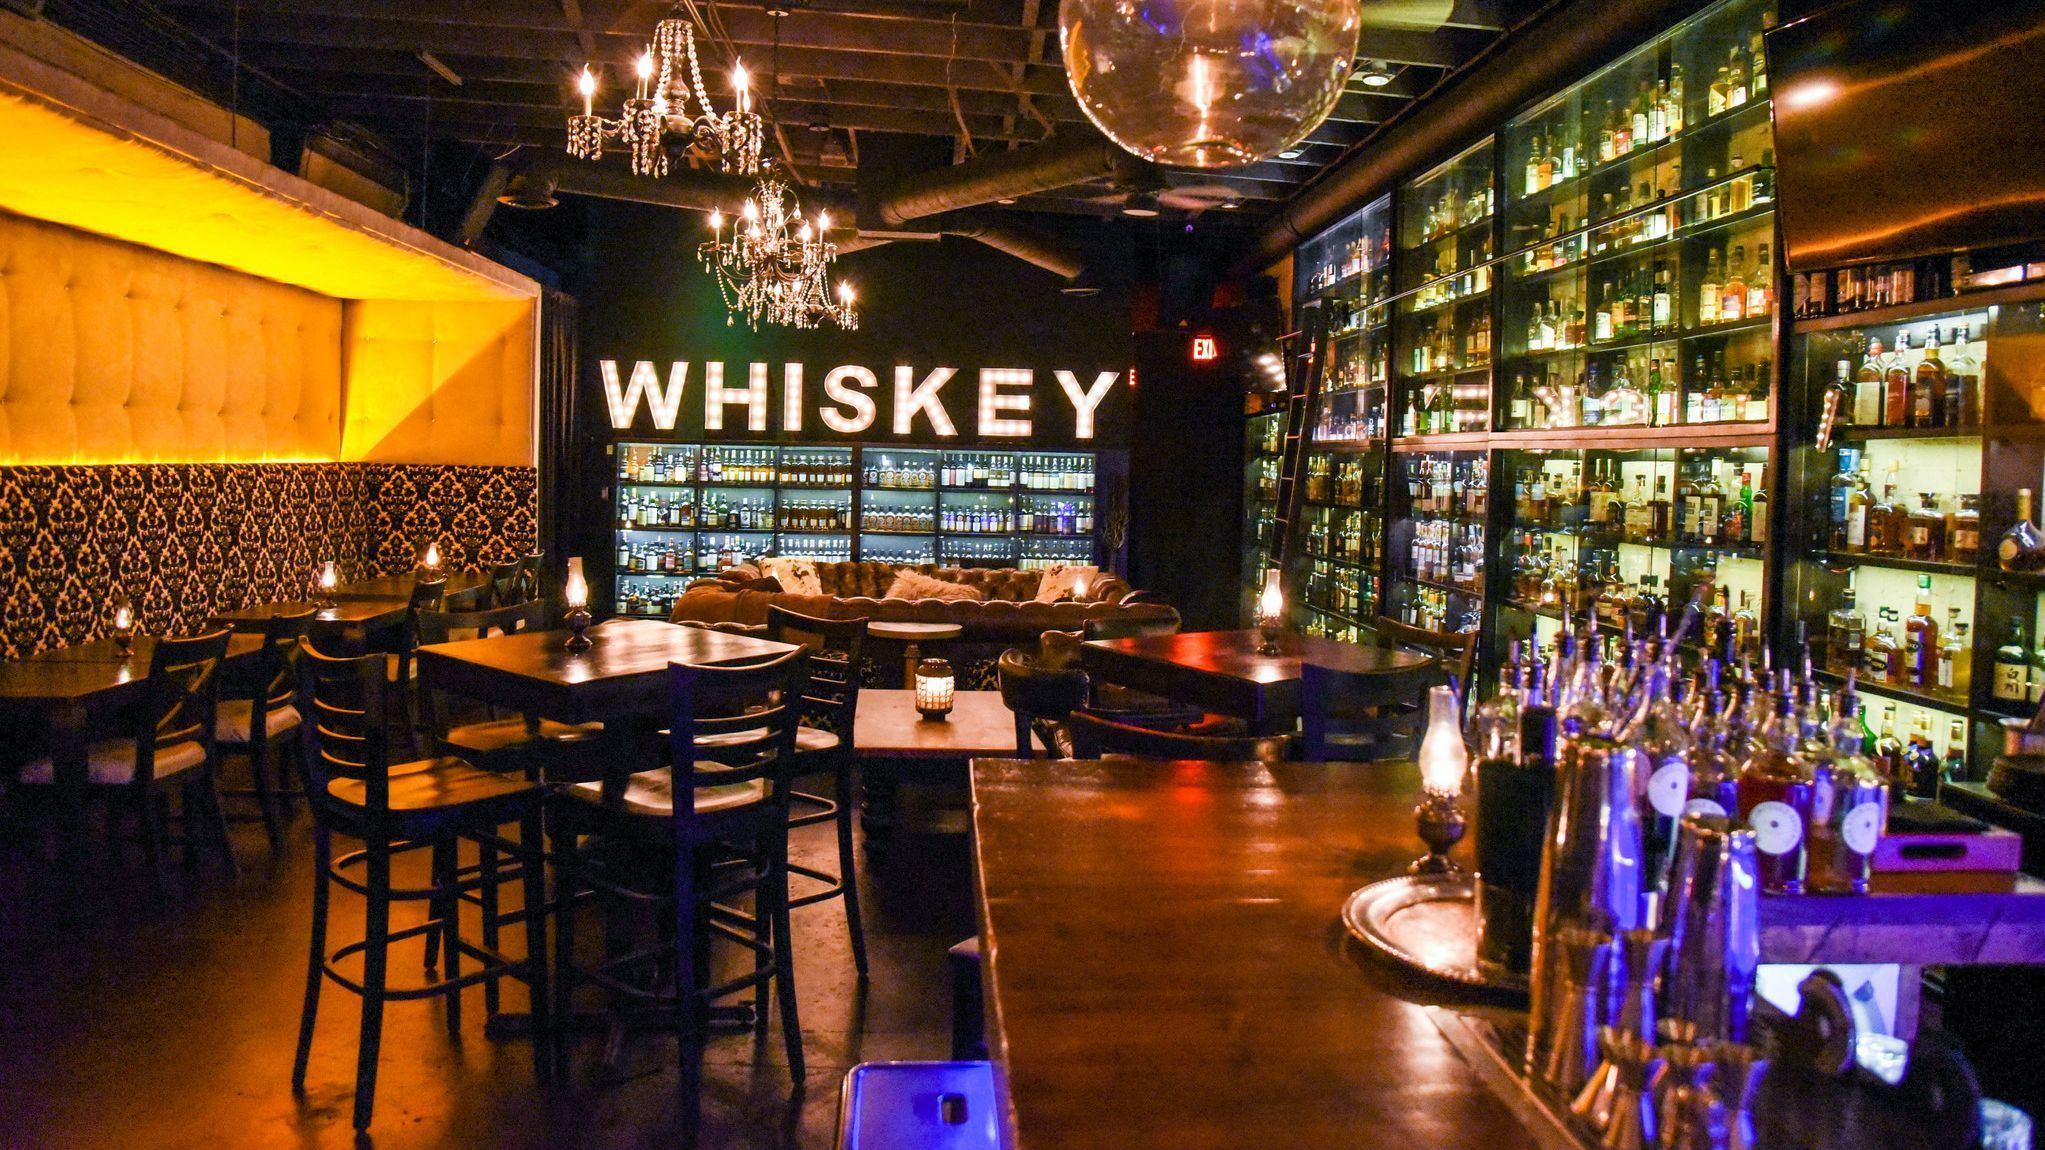 Gaslamp bar aims for Guinness record for world's largest whiskey collection